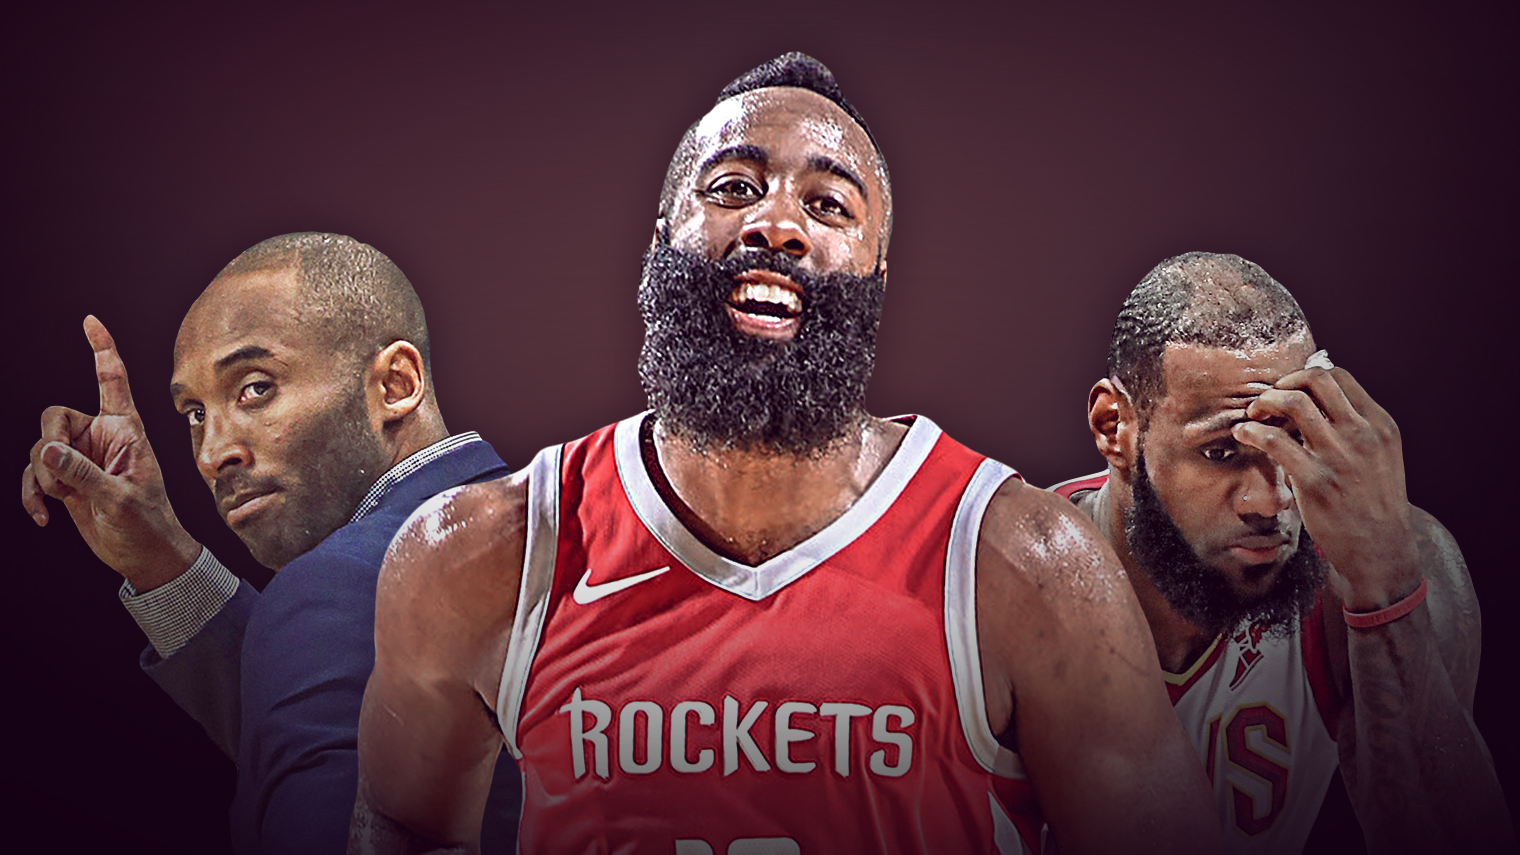 Kobe Bryant, James Harden, LeBron James